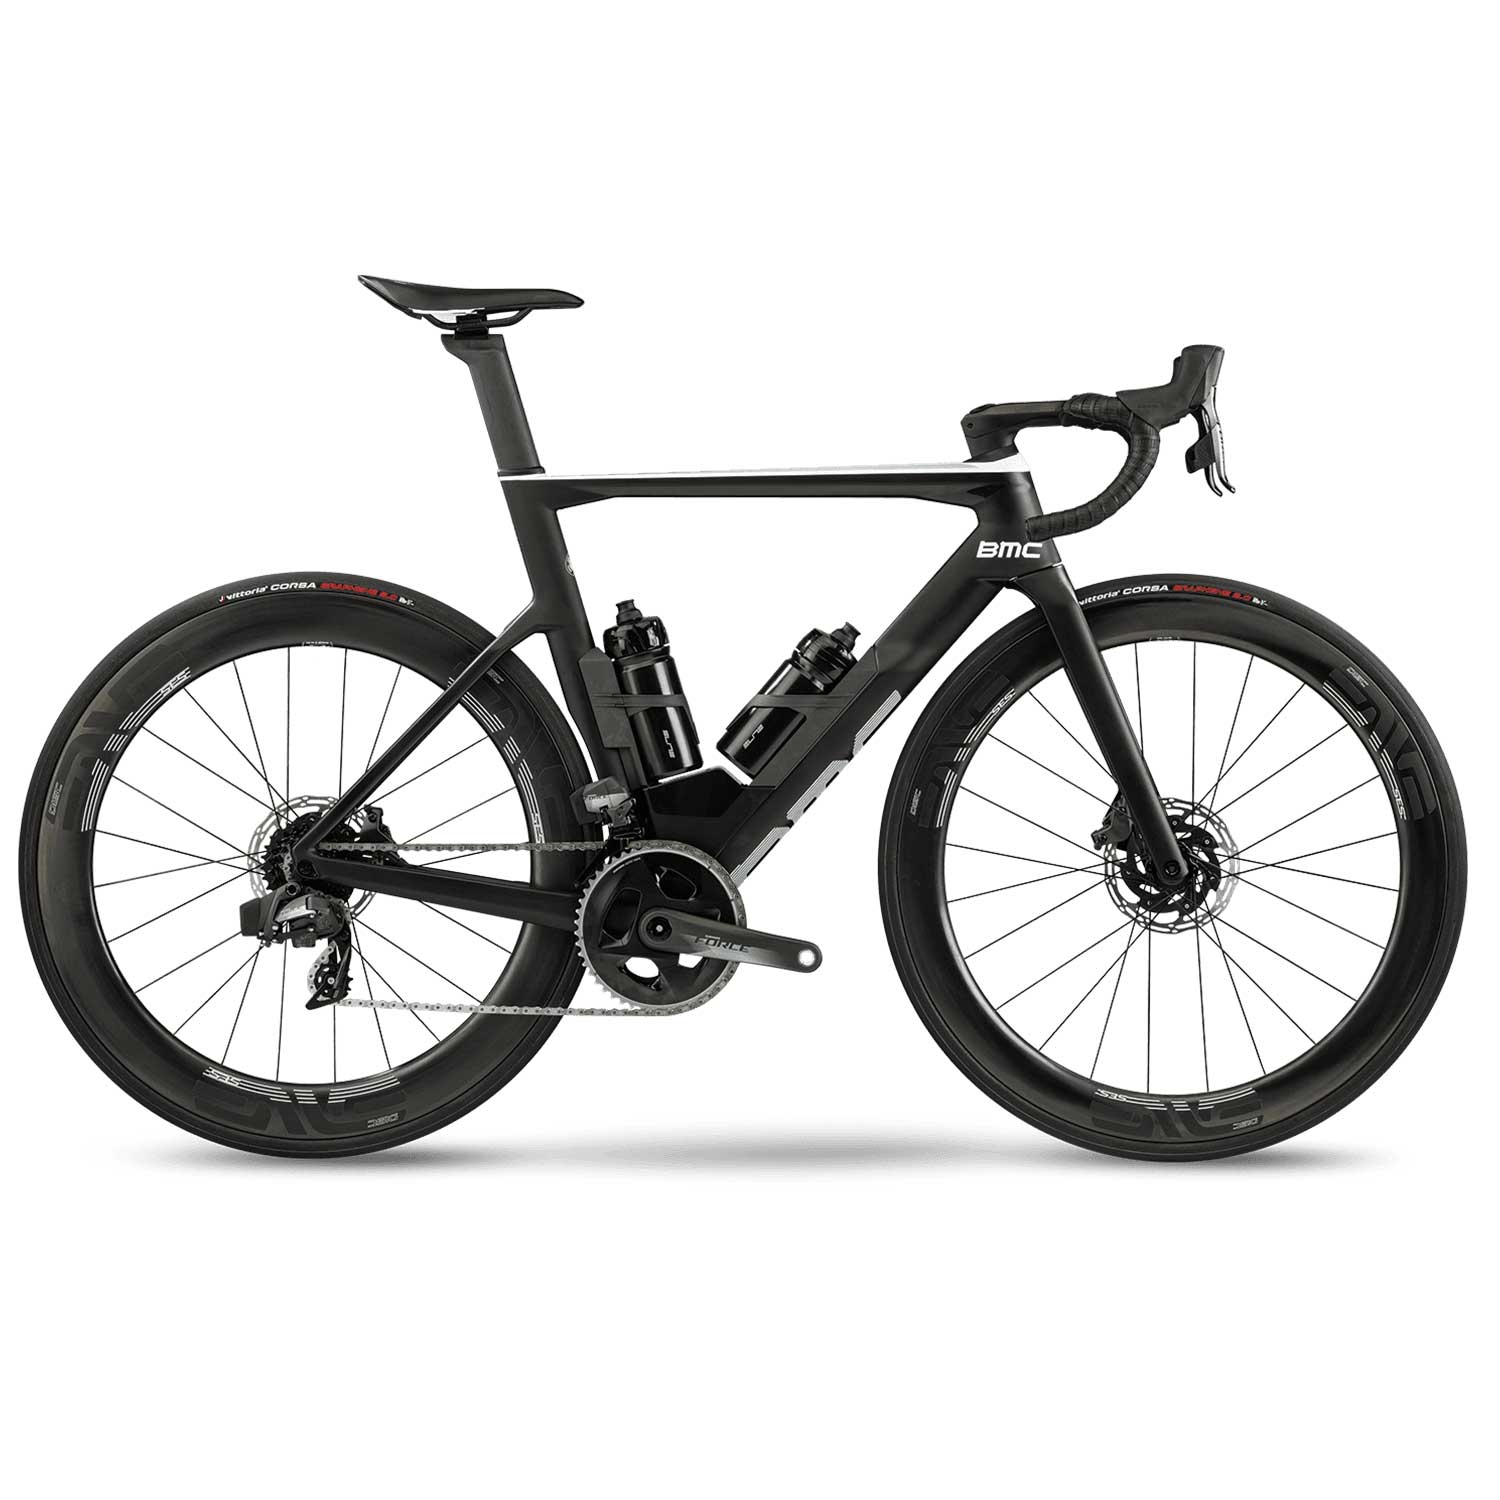 BMC Timemachine ROAD 01 TWO Force eTap AXS Road Bike